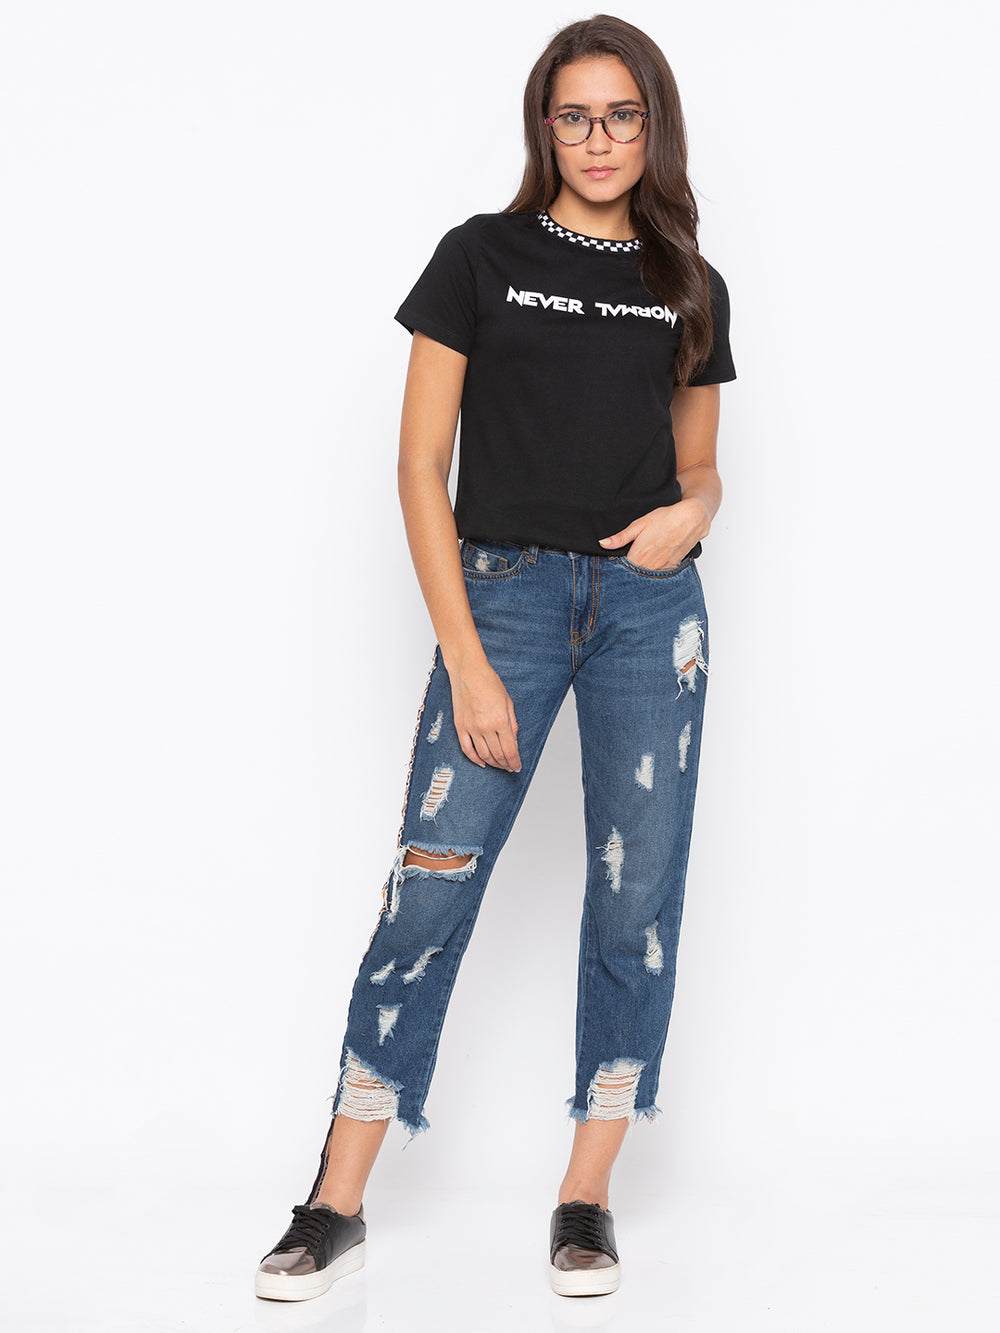 Black Never Normal Print Regular Fit T-shirt For Women's